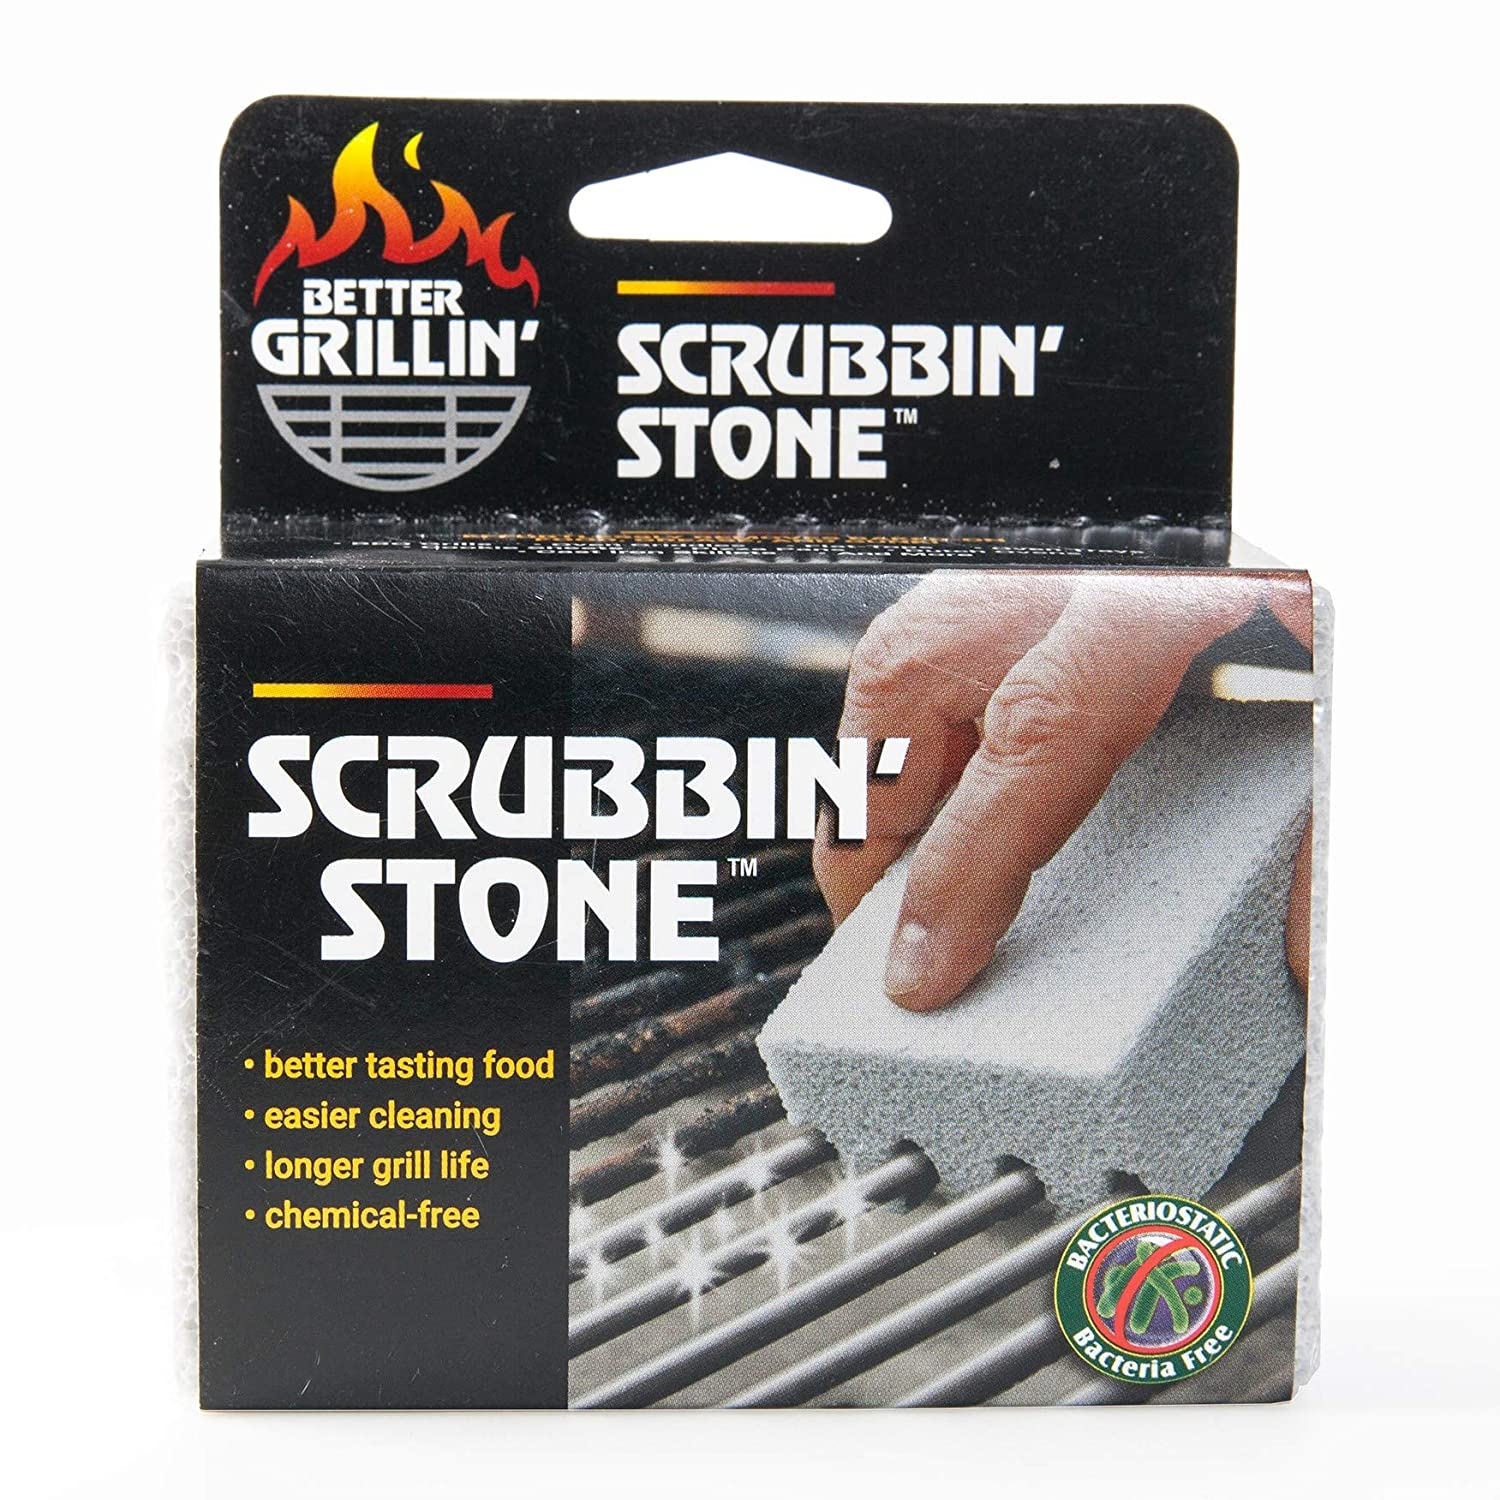 BETTER GRILLIN'' Scrubbin' Stone Grill Cleaner - Scouring Brick/Barbecue Grill Brush/Barbecue Cleaner - Advanced Green Technology Easily Removes Grime and Grease from BBQ, Grills, Griddles, Racks (1)